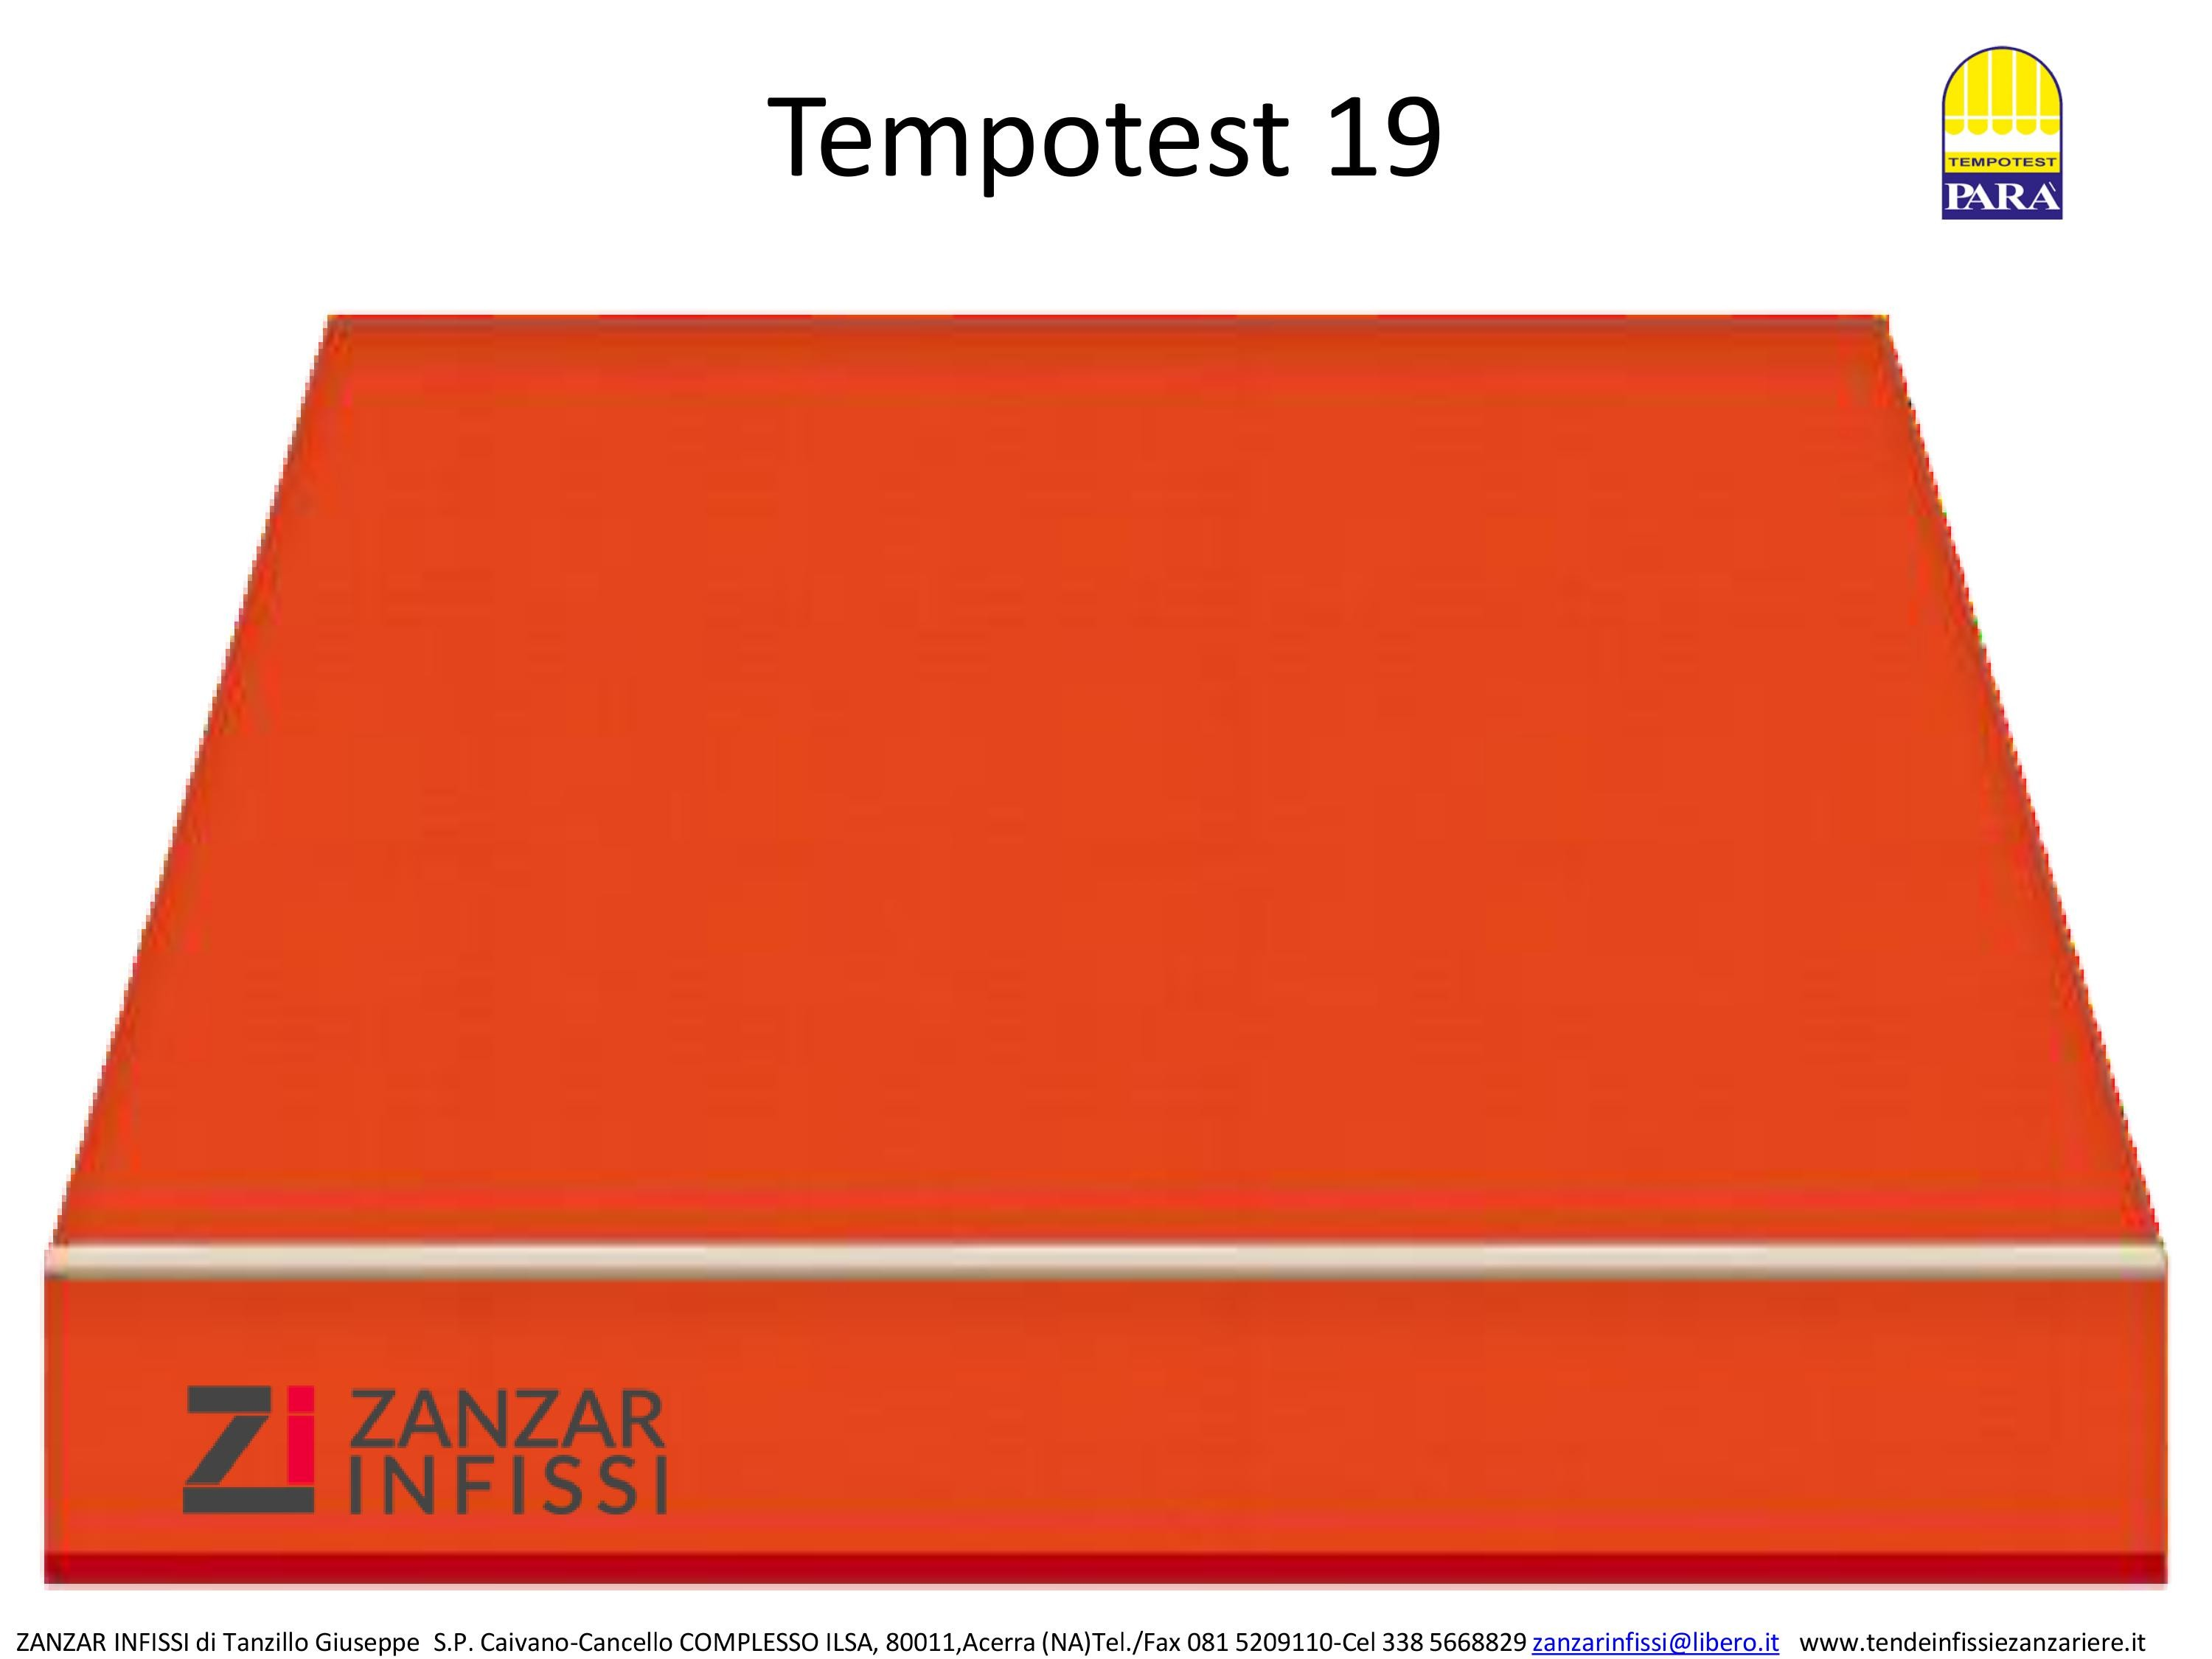 Tempotest 19